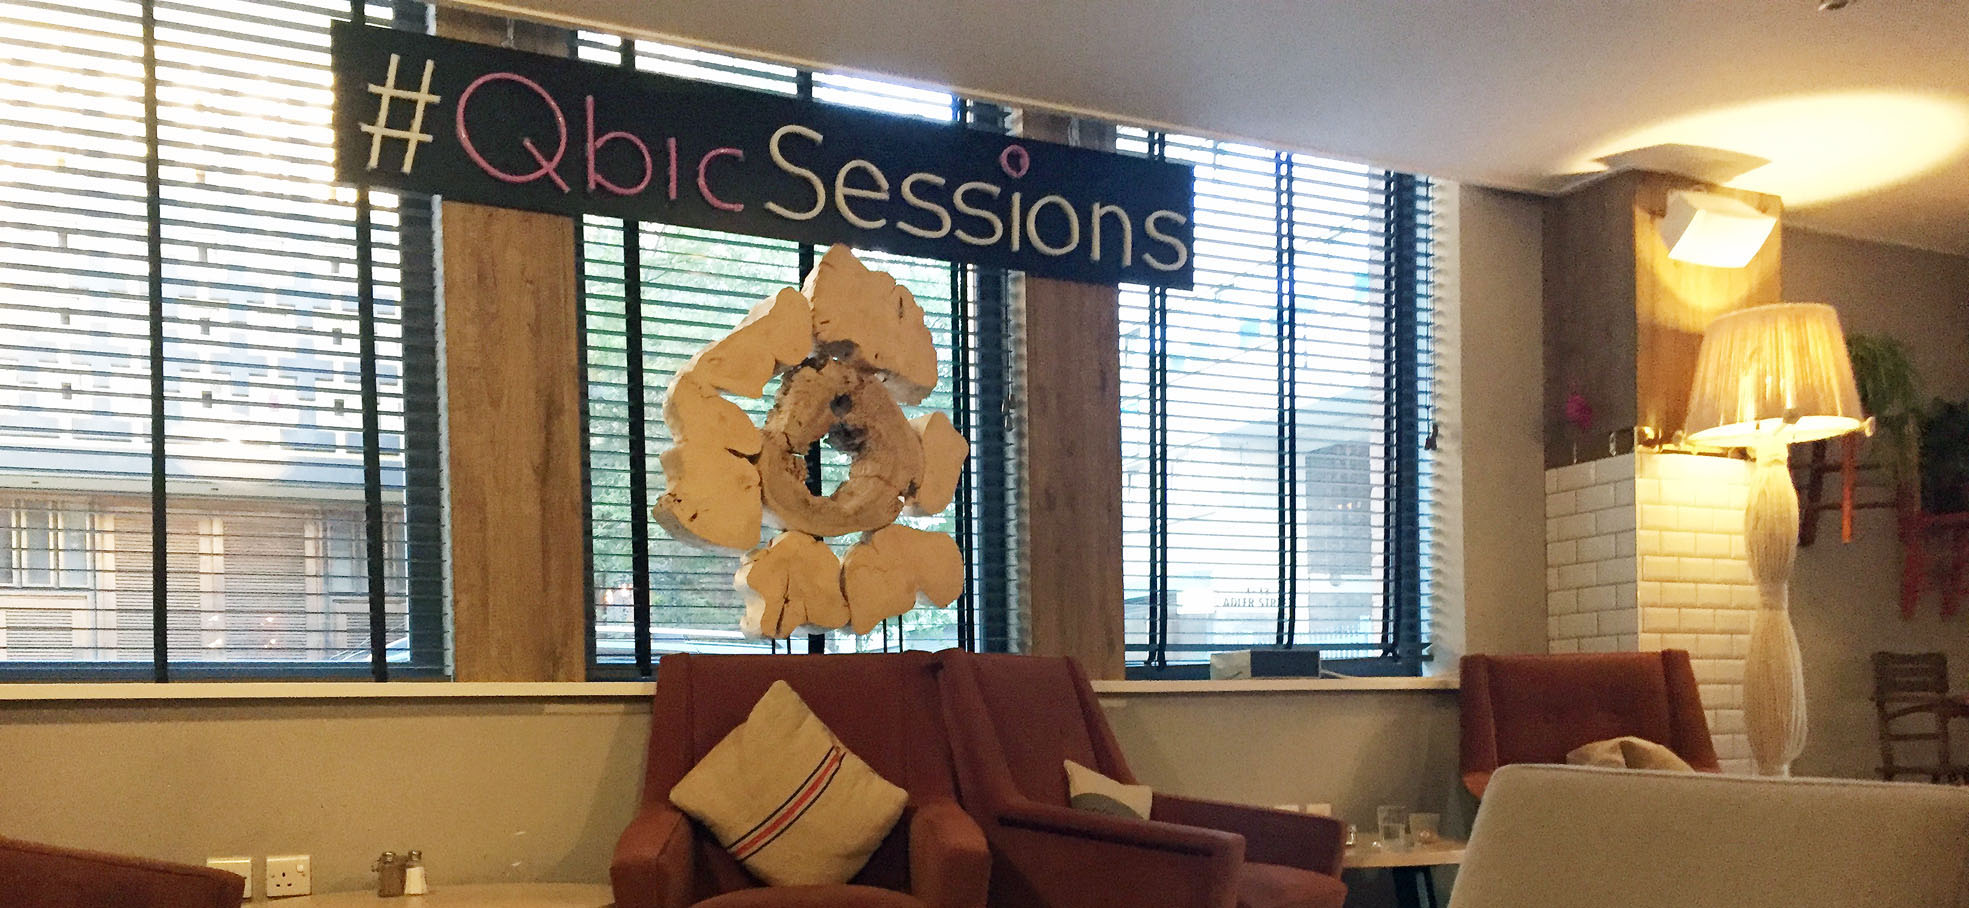 Hotelreview qbic hotel london tips4travellers for Qbic london